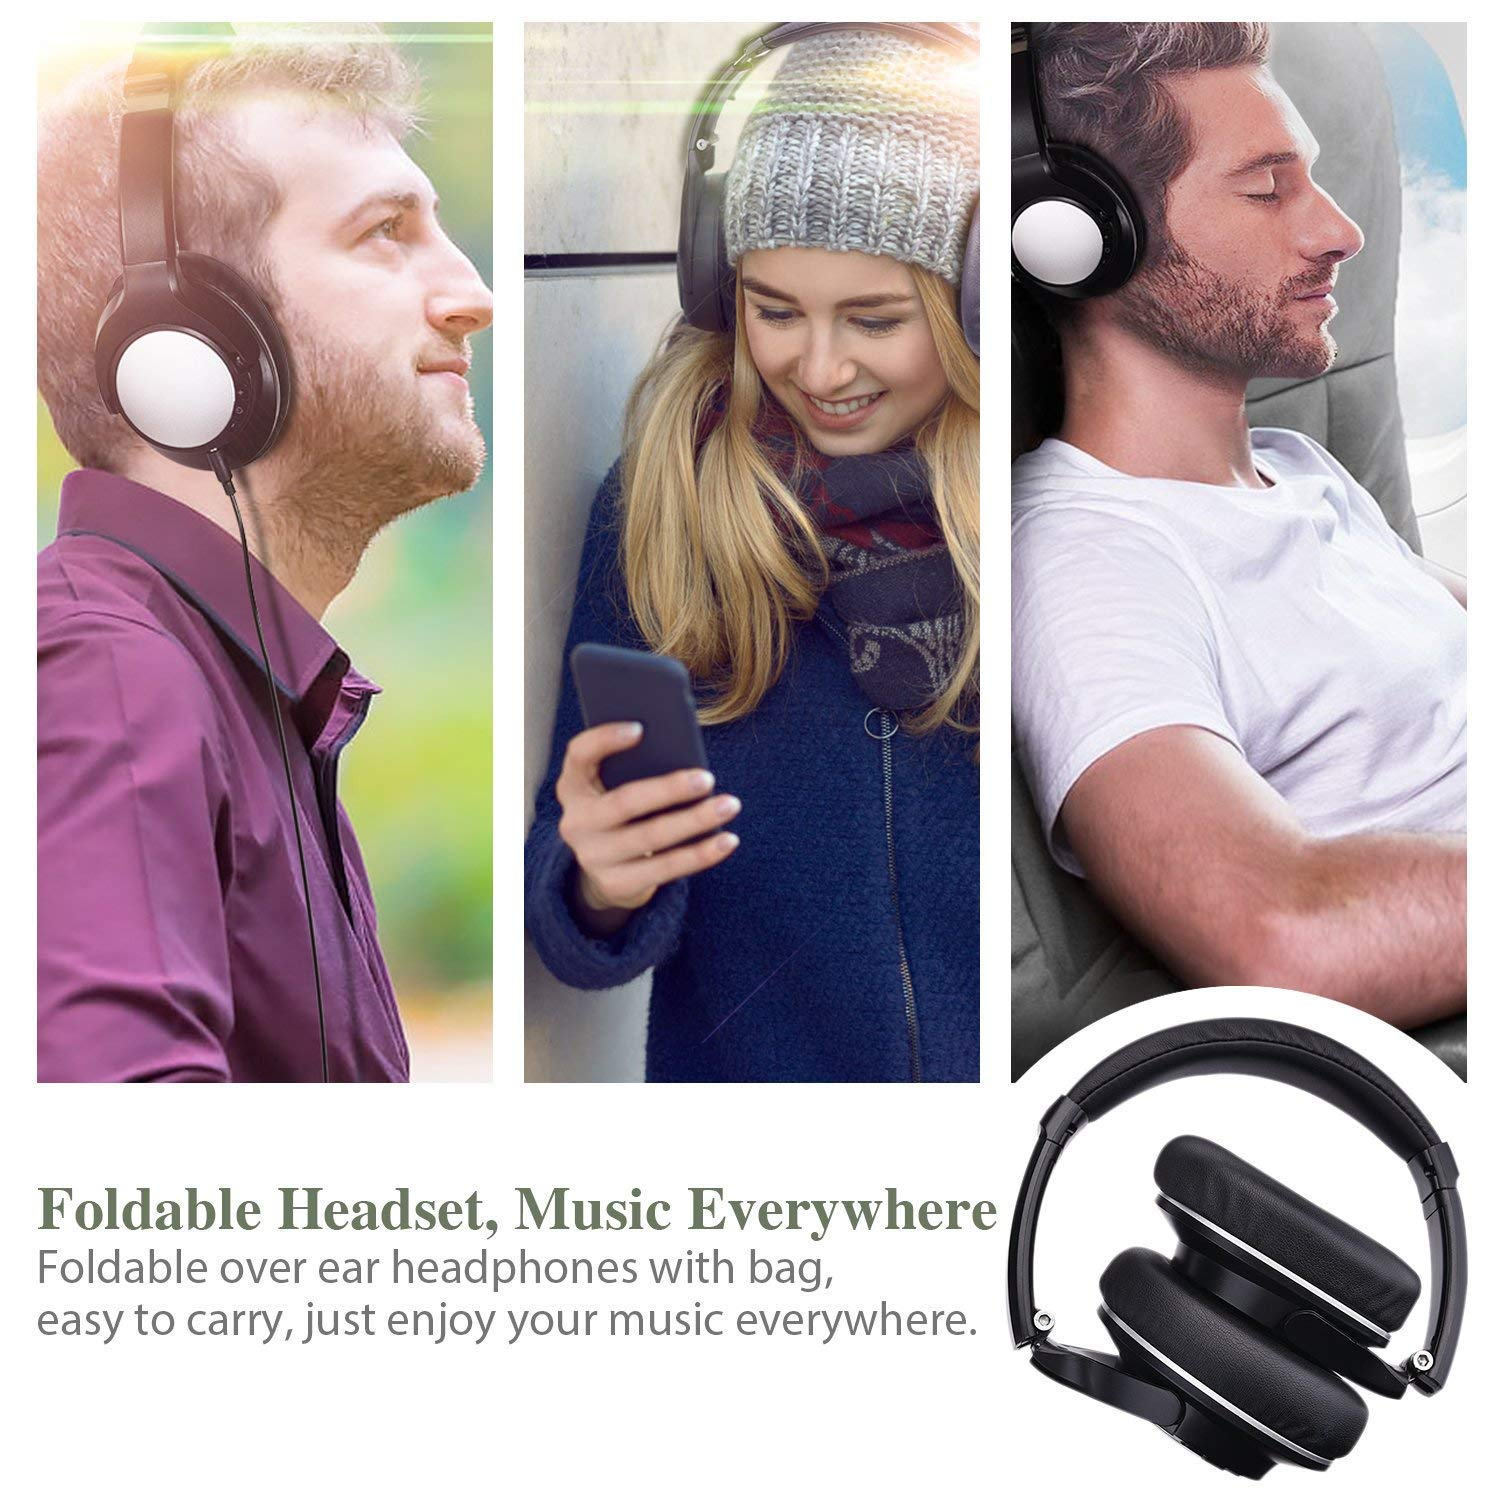 Bluetooth Headphones Over Ear, Zintou Hi-Fi Stereo Wireless Headset Foldable Noise Cancelling Soft Earmuffs Microphone Headphones with 3.5mm Backup Wired AUX Cable Wired Mode for PC Cell Phones